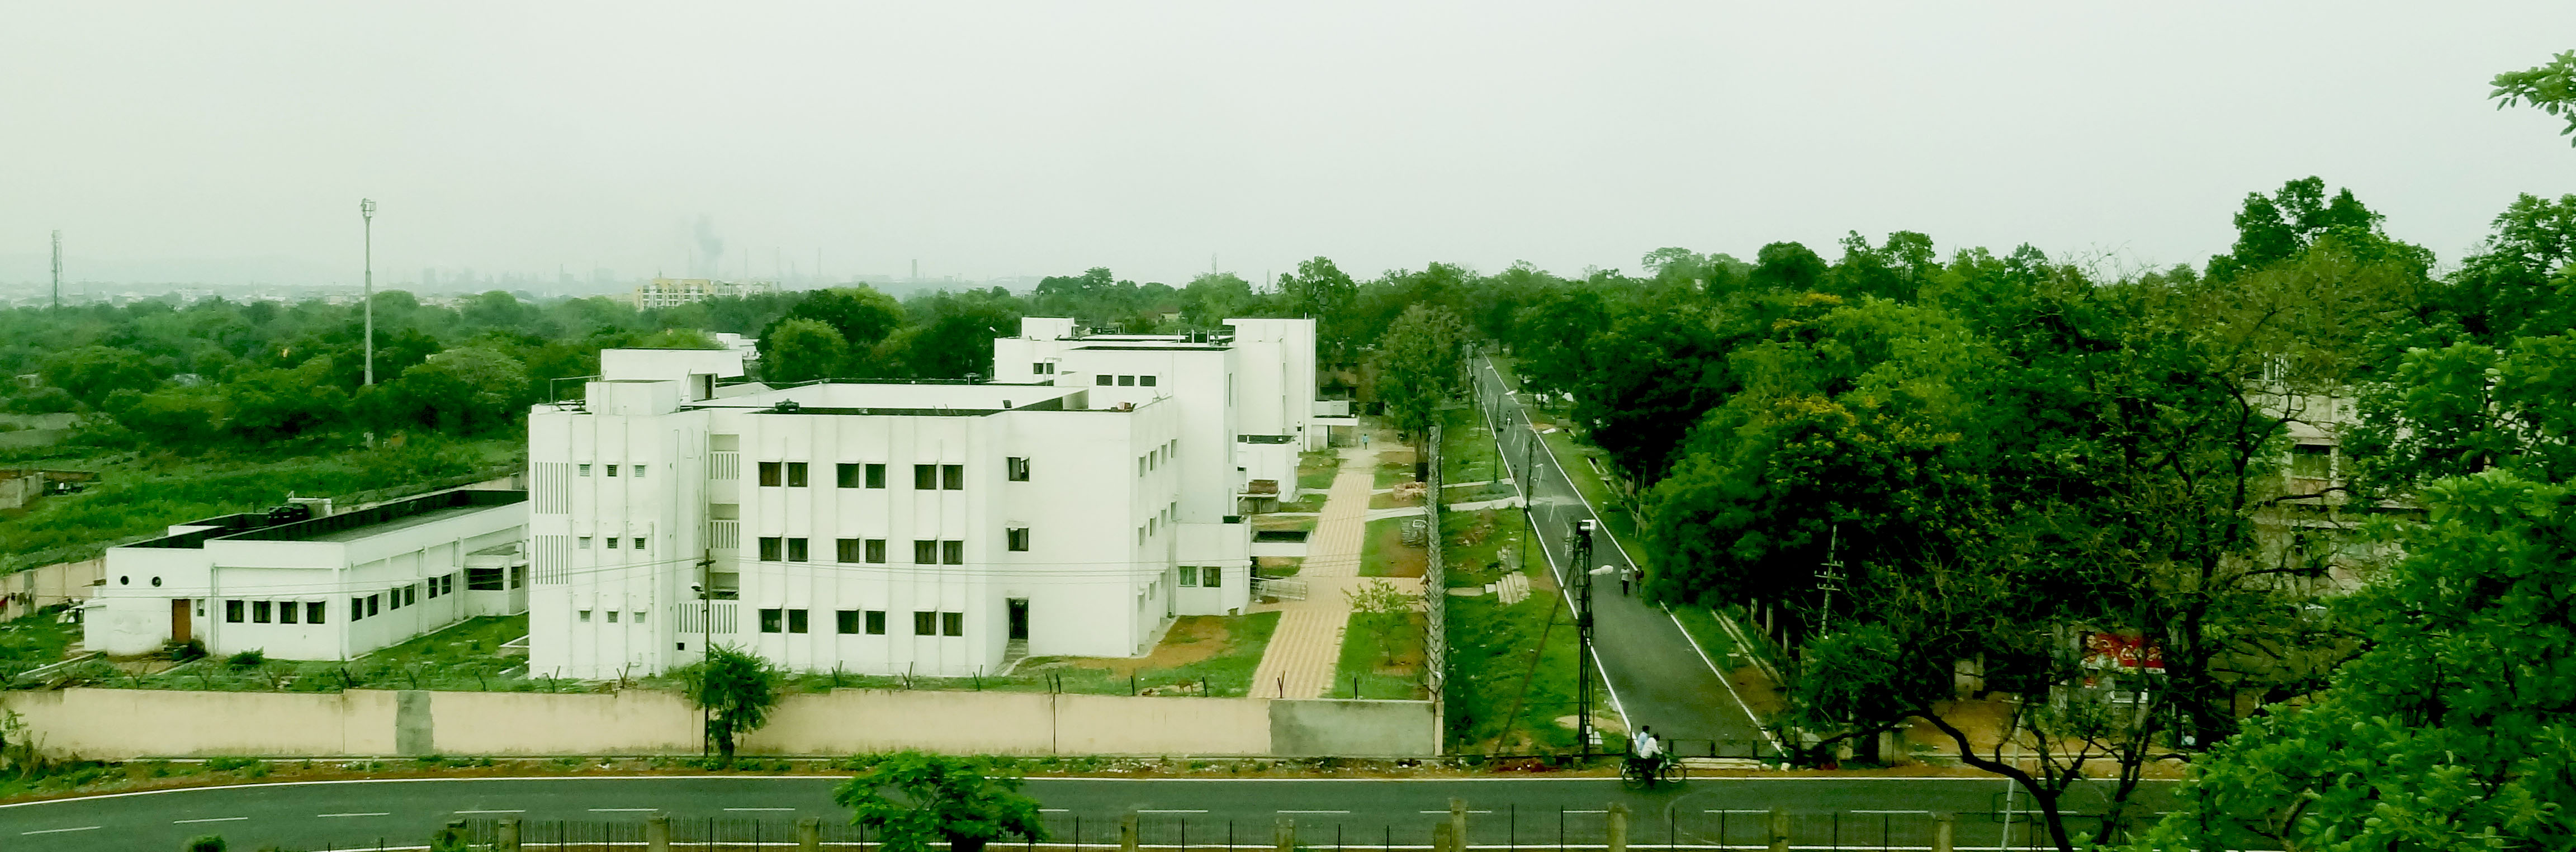 IIIT (Indian Institute of Information Technology), Ranchi Image